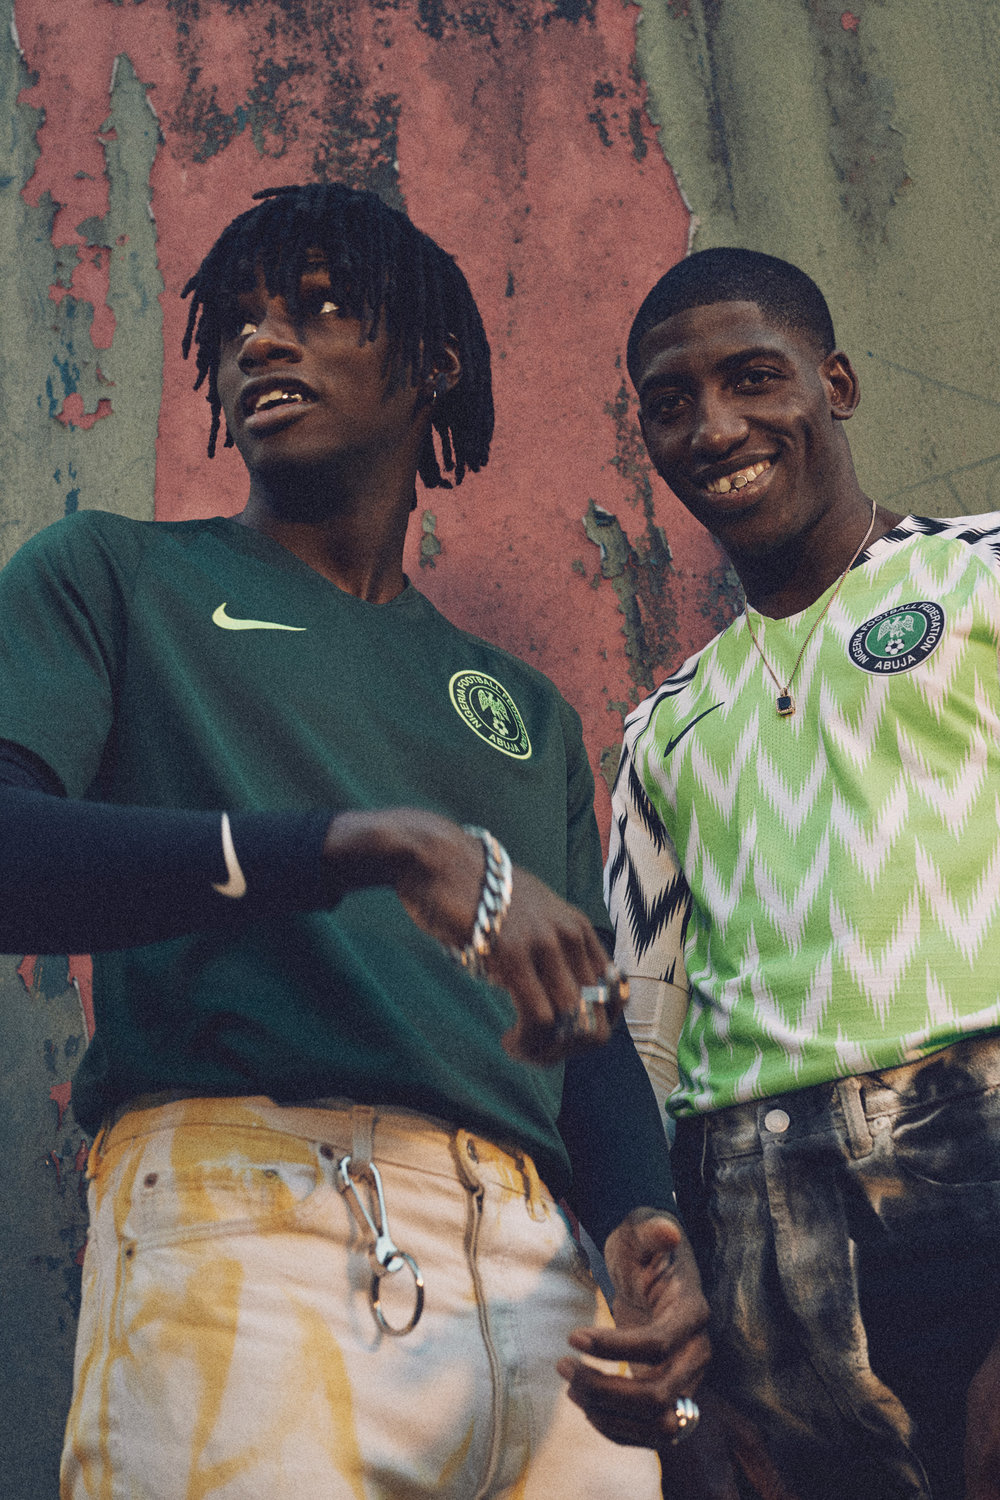 Nike-News-Football-Soccer-Nigeria-National-Team-Kit-7_77373.JPG